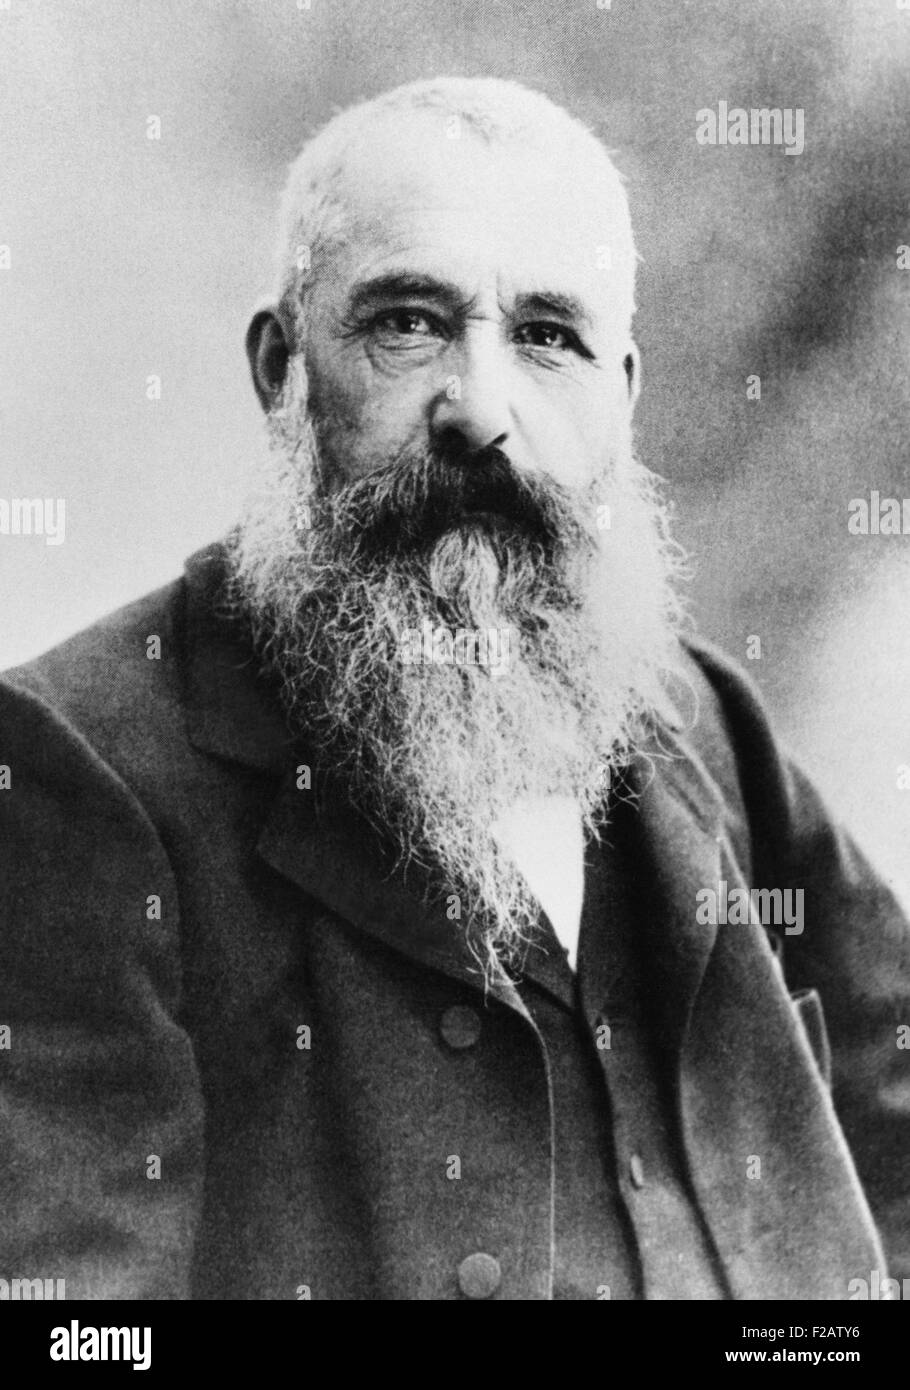 Claude Monet in 1901 in the Giverny. Photograph by Gaspard Felix Nadar. The 60 year old impressionist painter would - Stock Image